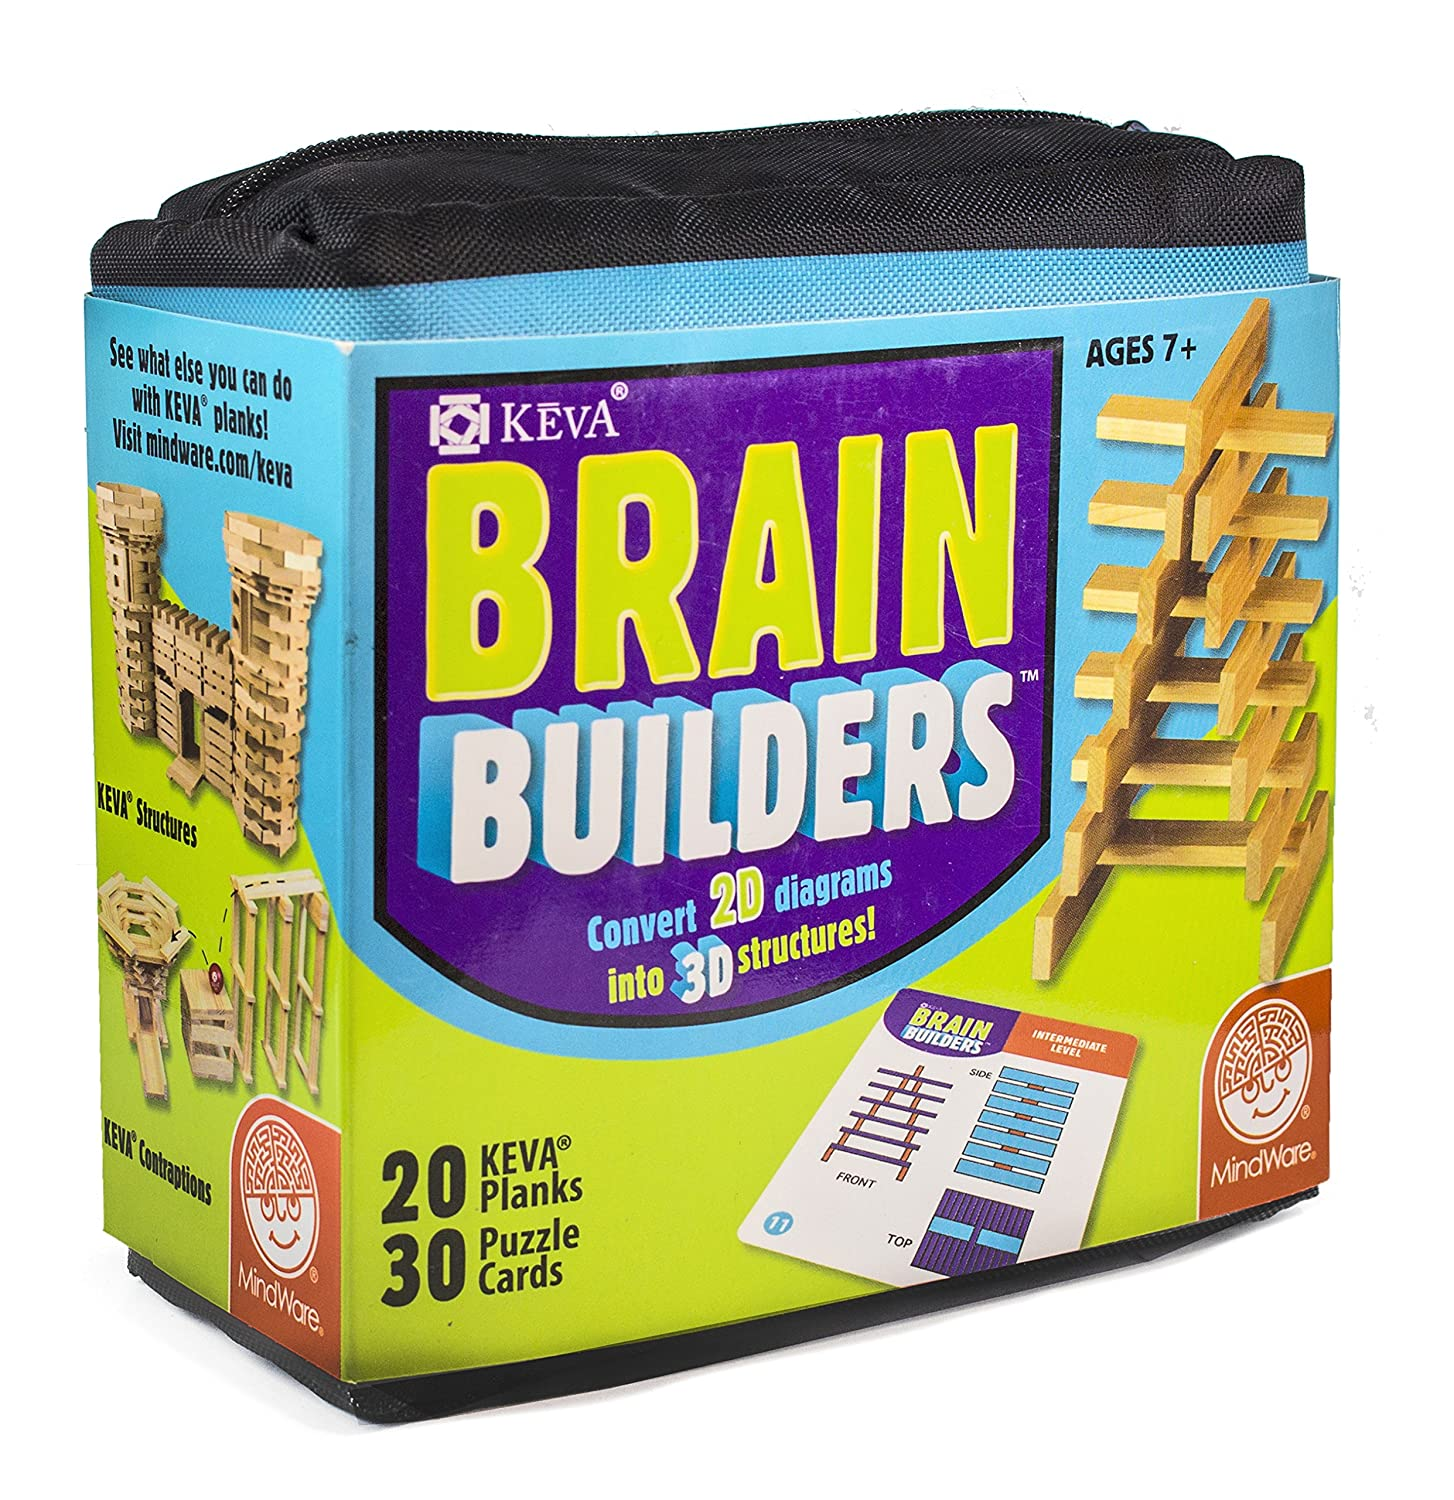 https://www.amazon.com/MindWare-66009-KEVA-Brain-Builders/dp/B00IECWX5G/ref=as_li_ss_tl?ie=UTF8&linkCode=ll1&tag=traihapphear-20&linkId=f10582afe6c473bf312723023bc776dd